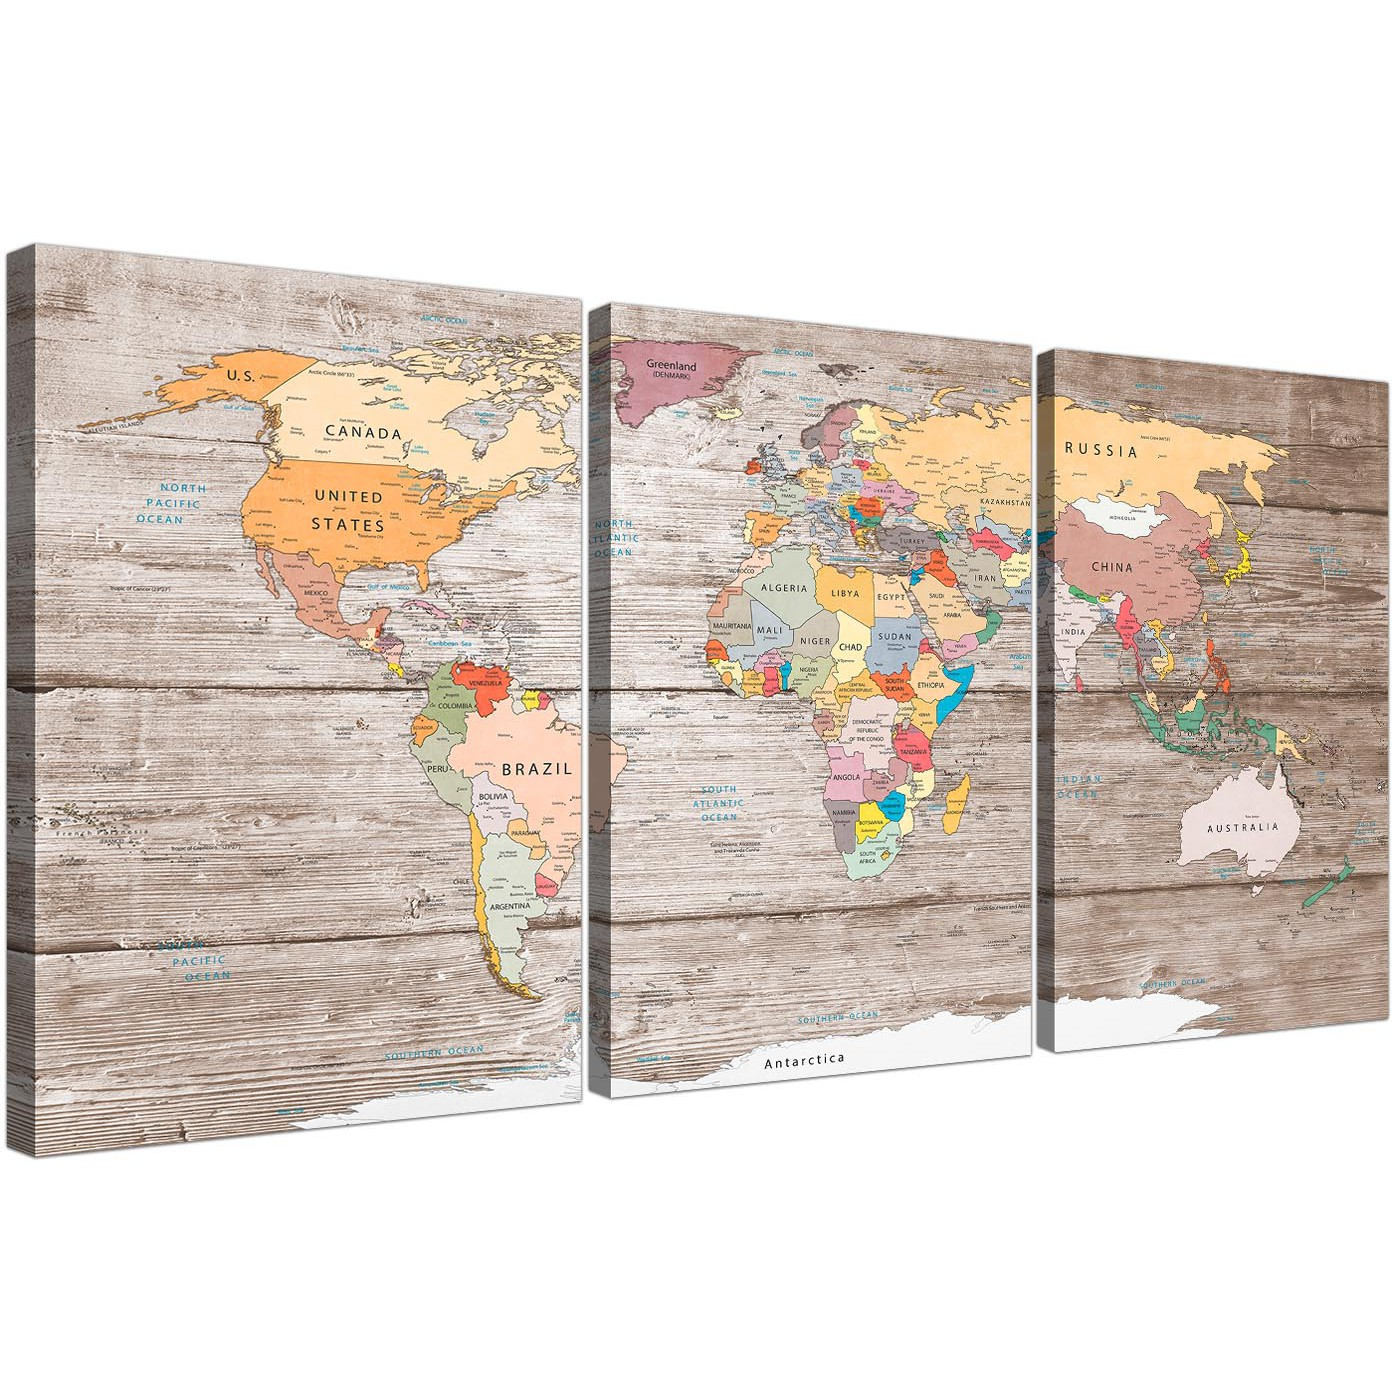 Large decorative map of world atlas canvas wall art print multi 3 oversized large decorative map of the world atlas canvas multi triptych 3326 for your kitchen display gallery item 1 gumiabroncs Images